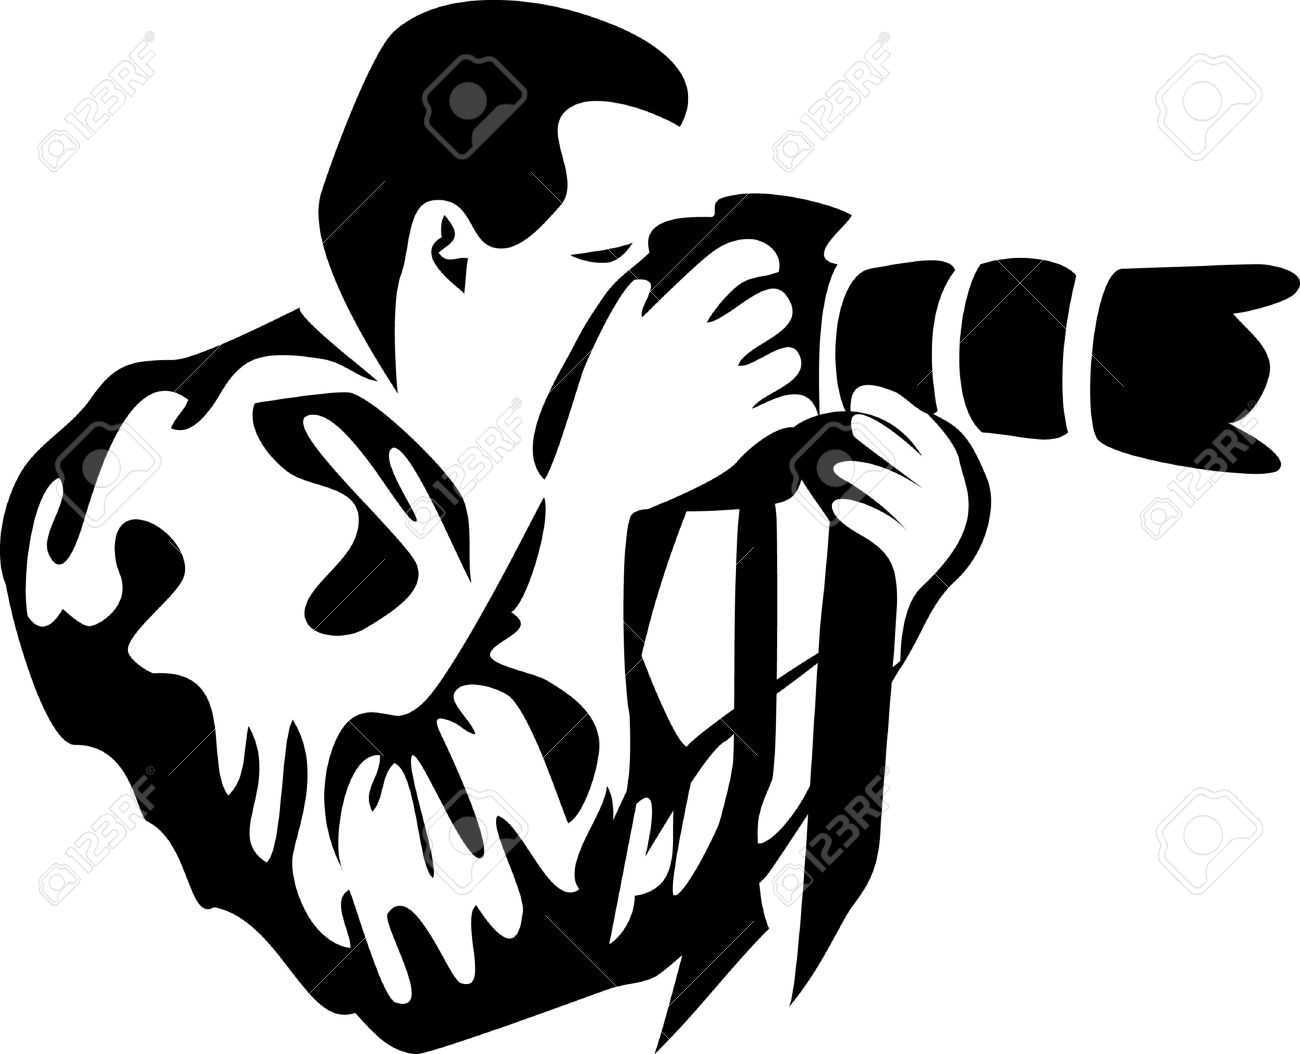 Photography logo png best. Camera clipart photographer